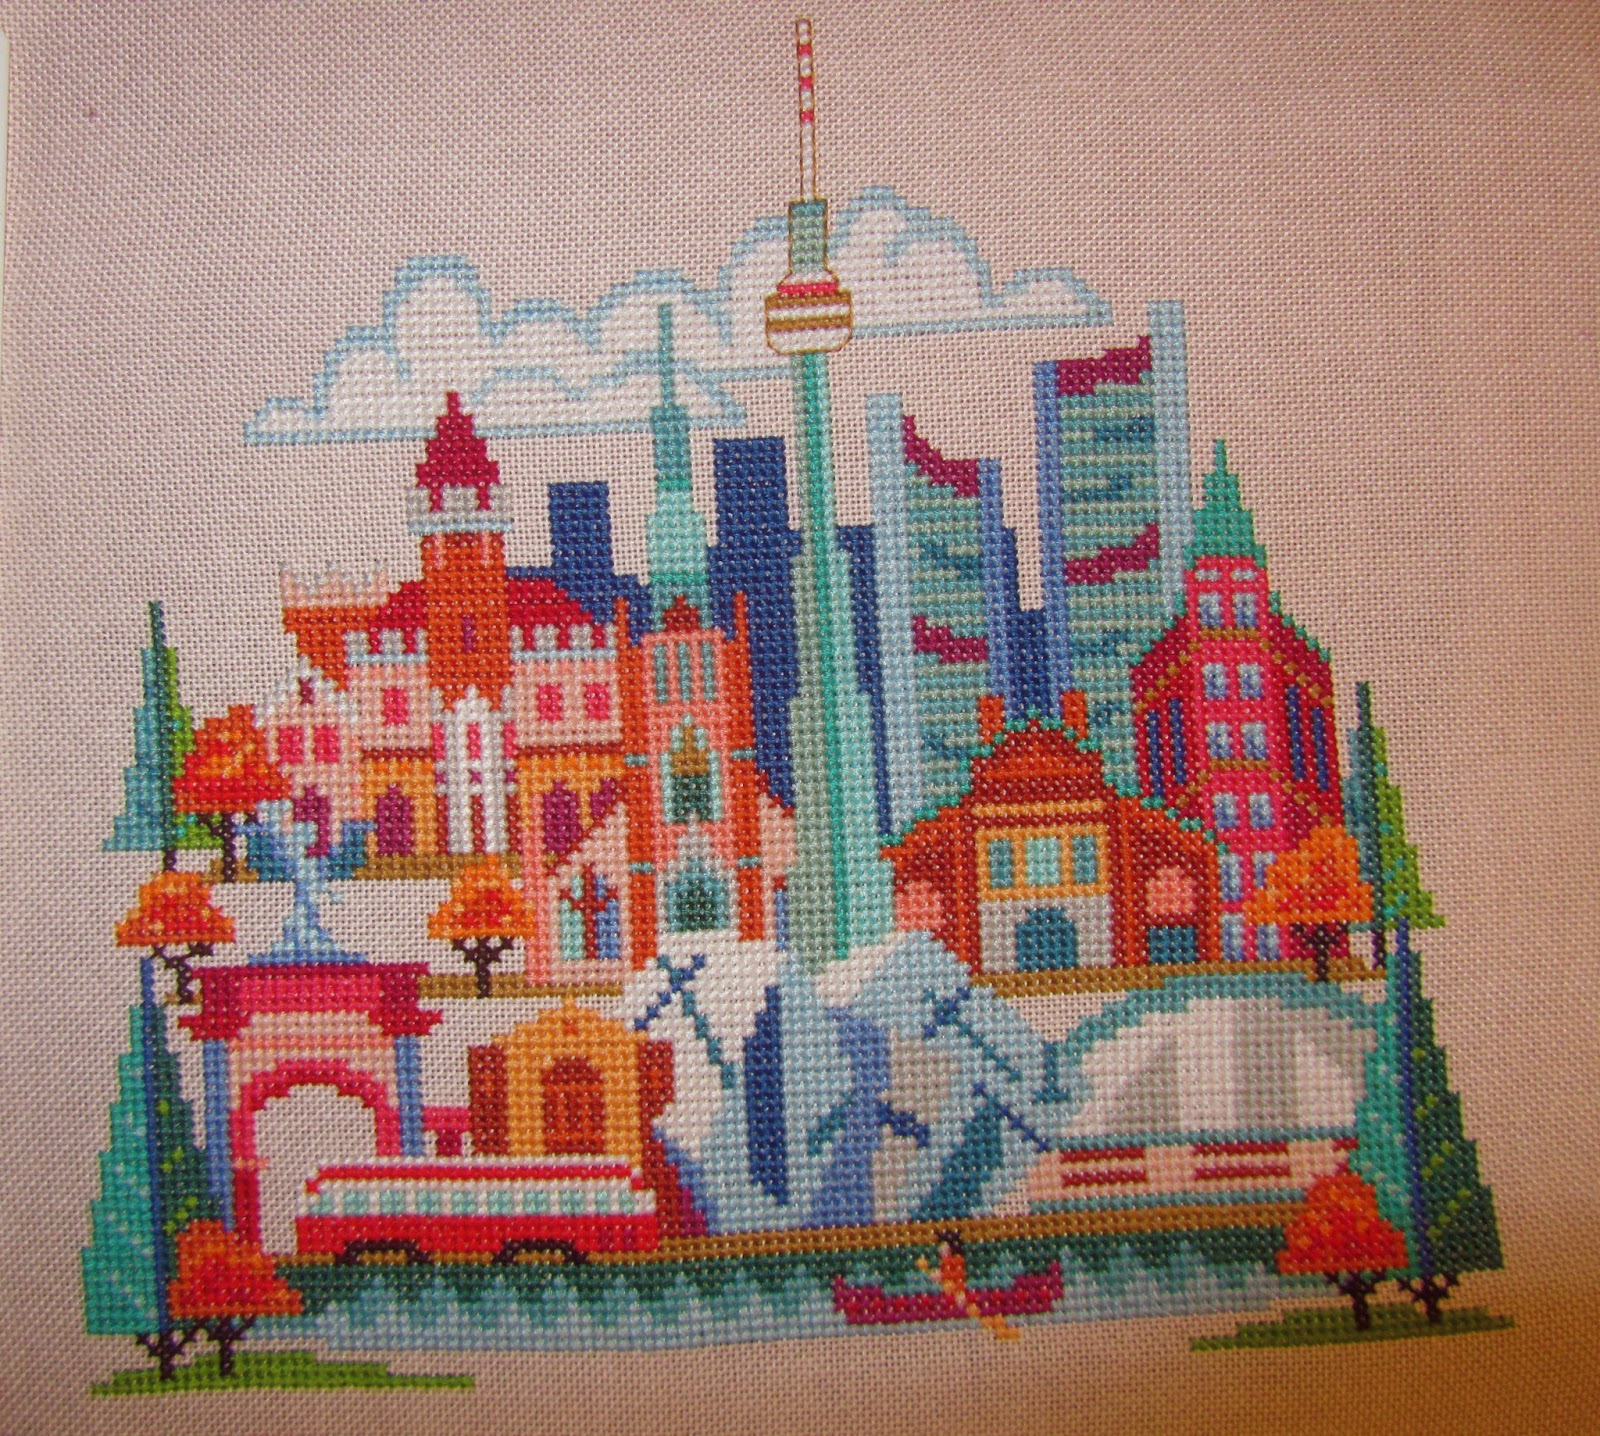 Art from the distant past: cross stitch for beginners